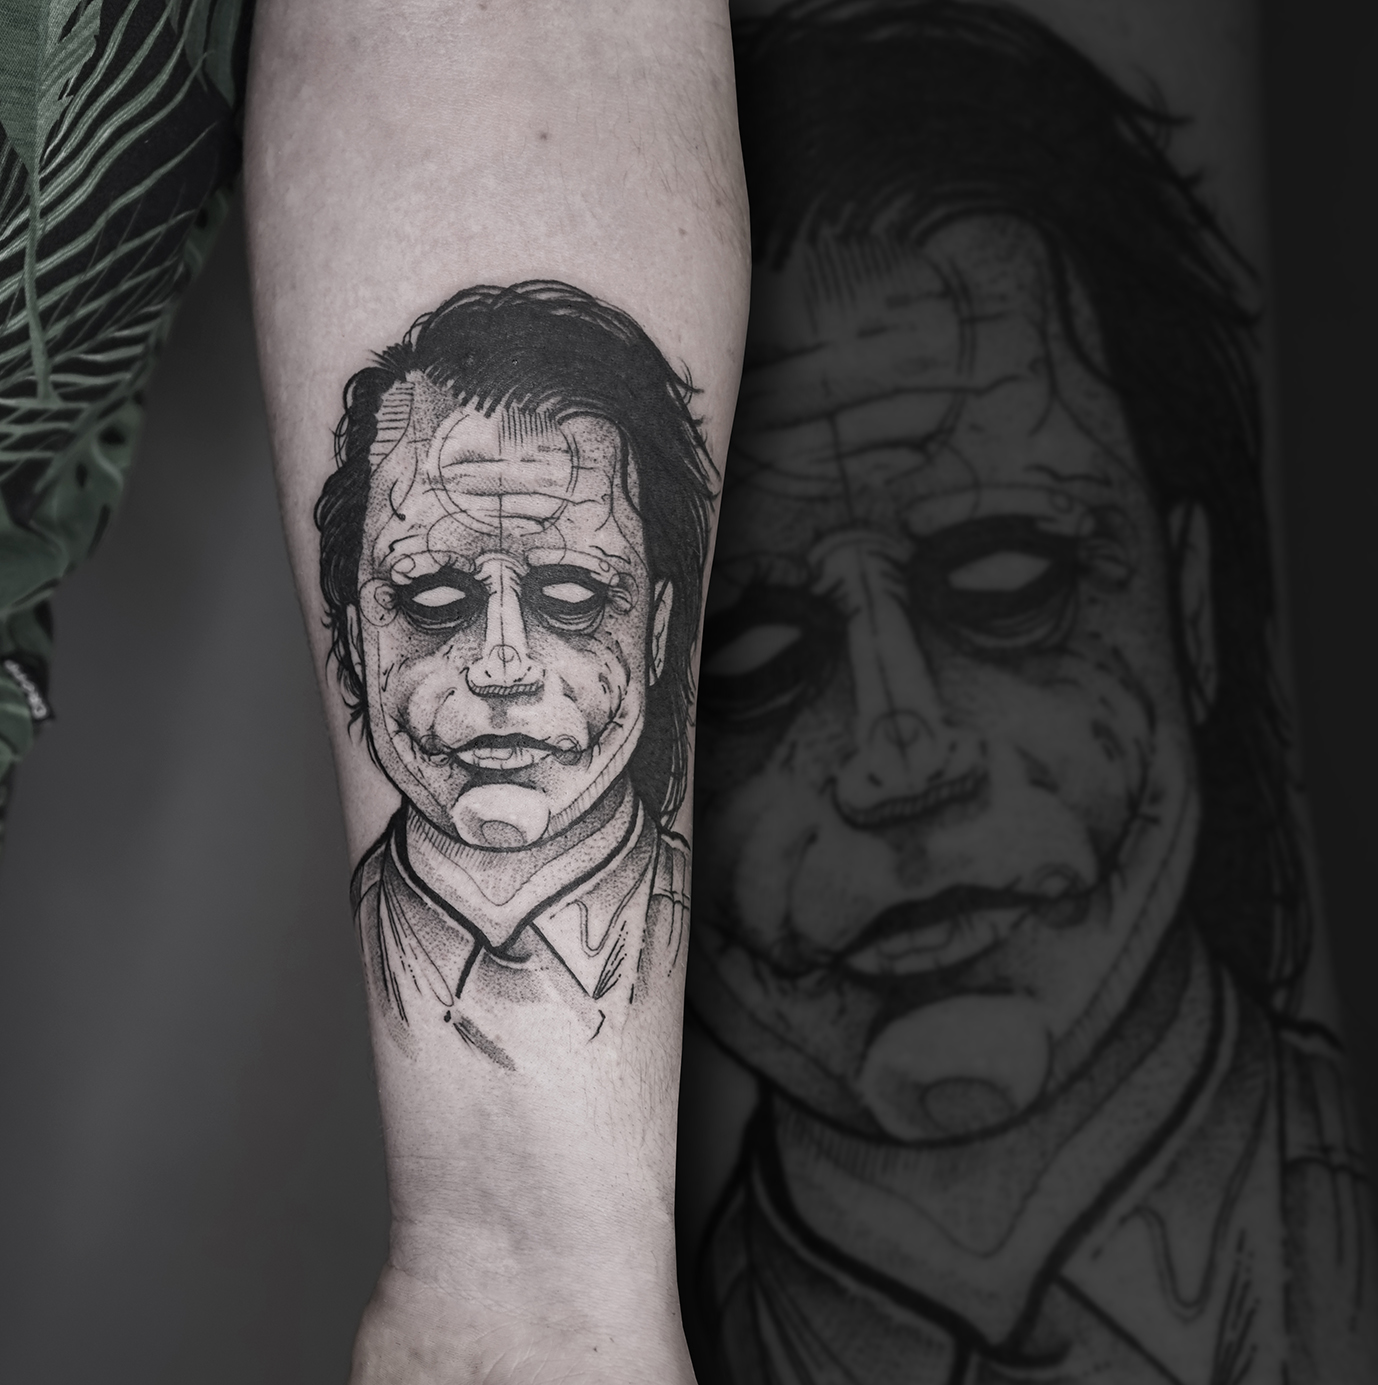 Tattoo Zincik - Joker Black tattoo